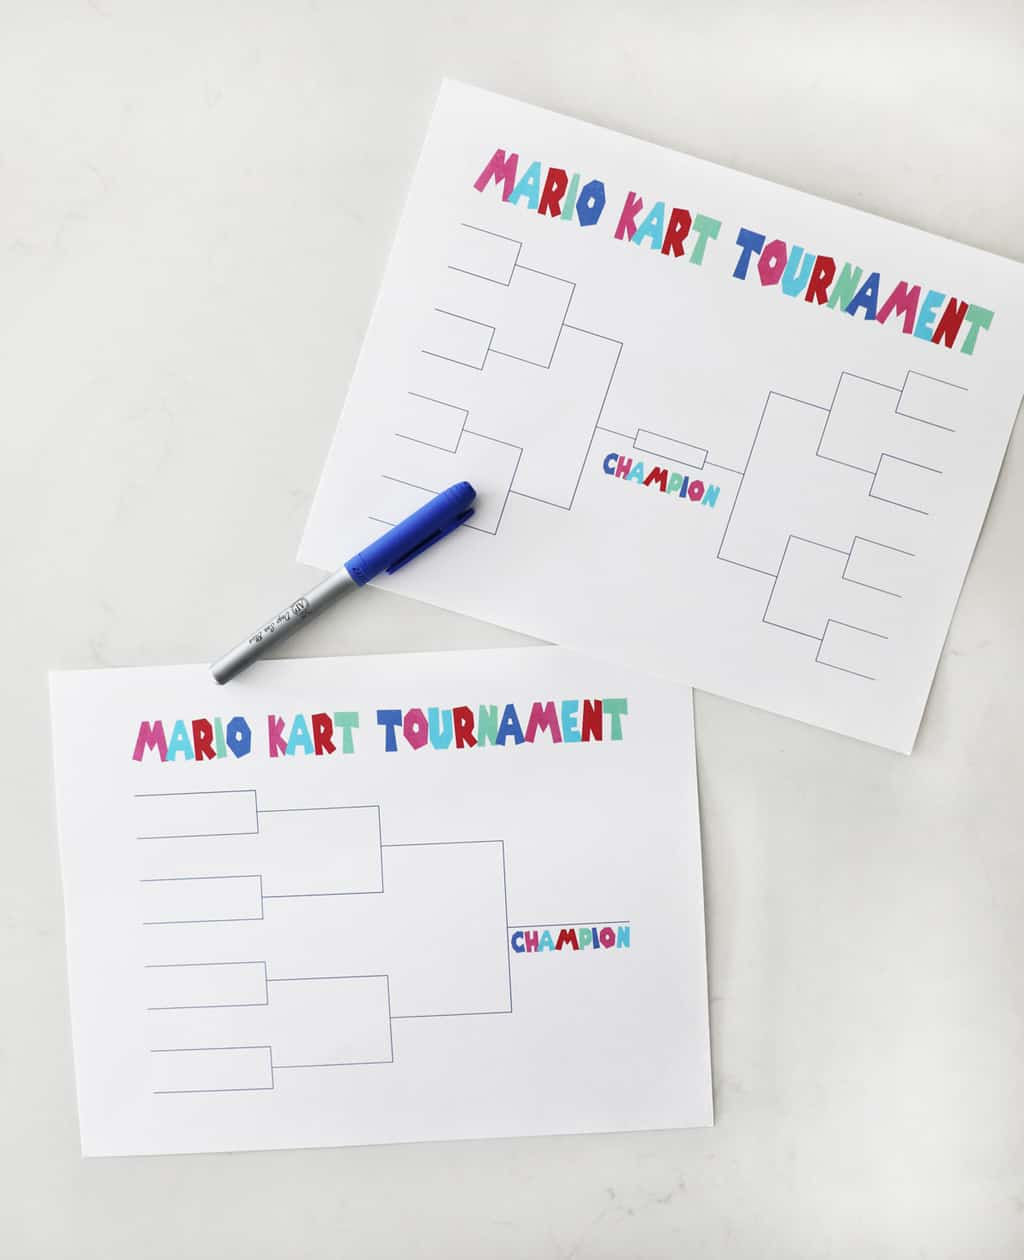 two printable mario kart tournament brackets on a white countertop with a blue sharpie